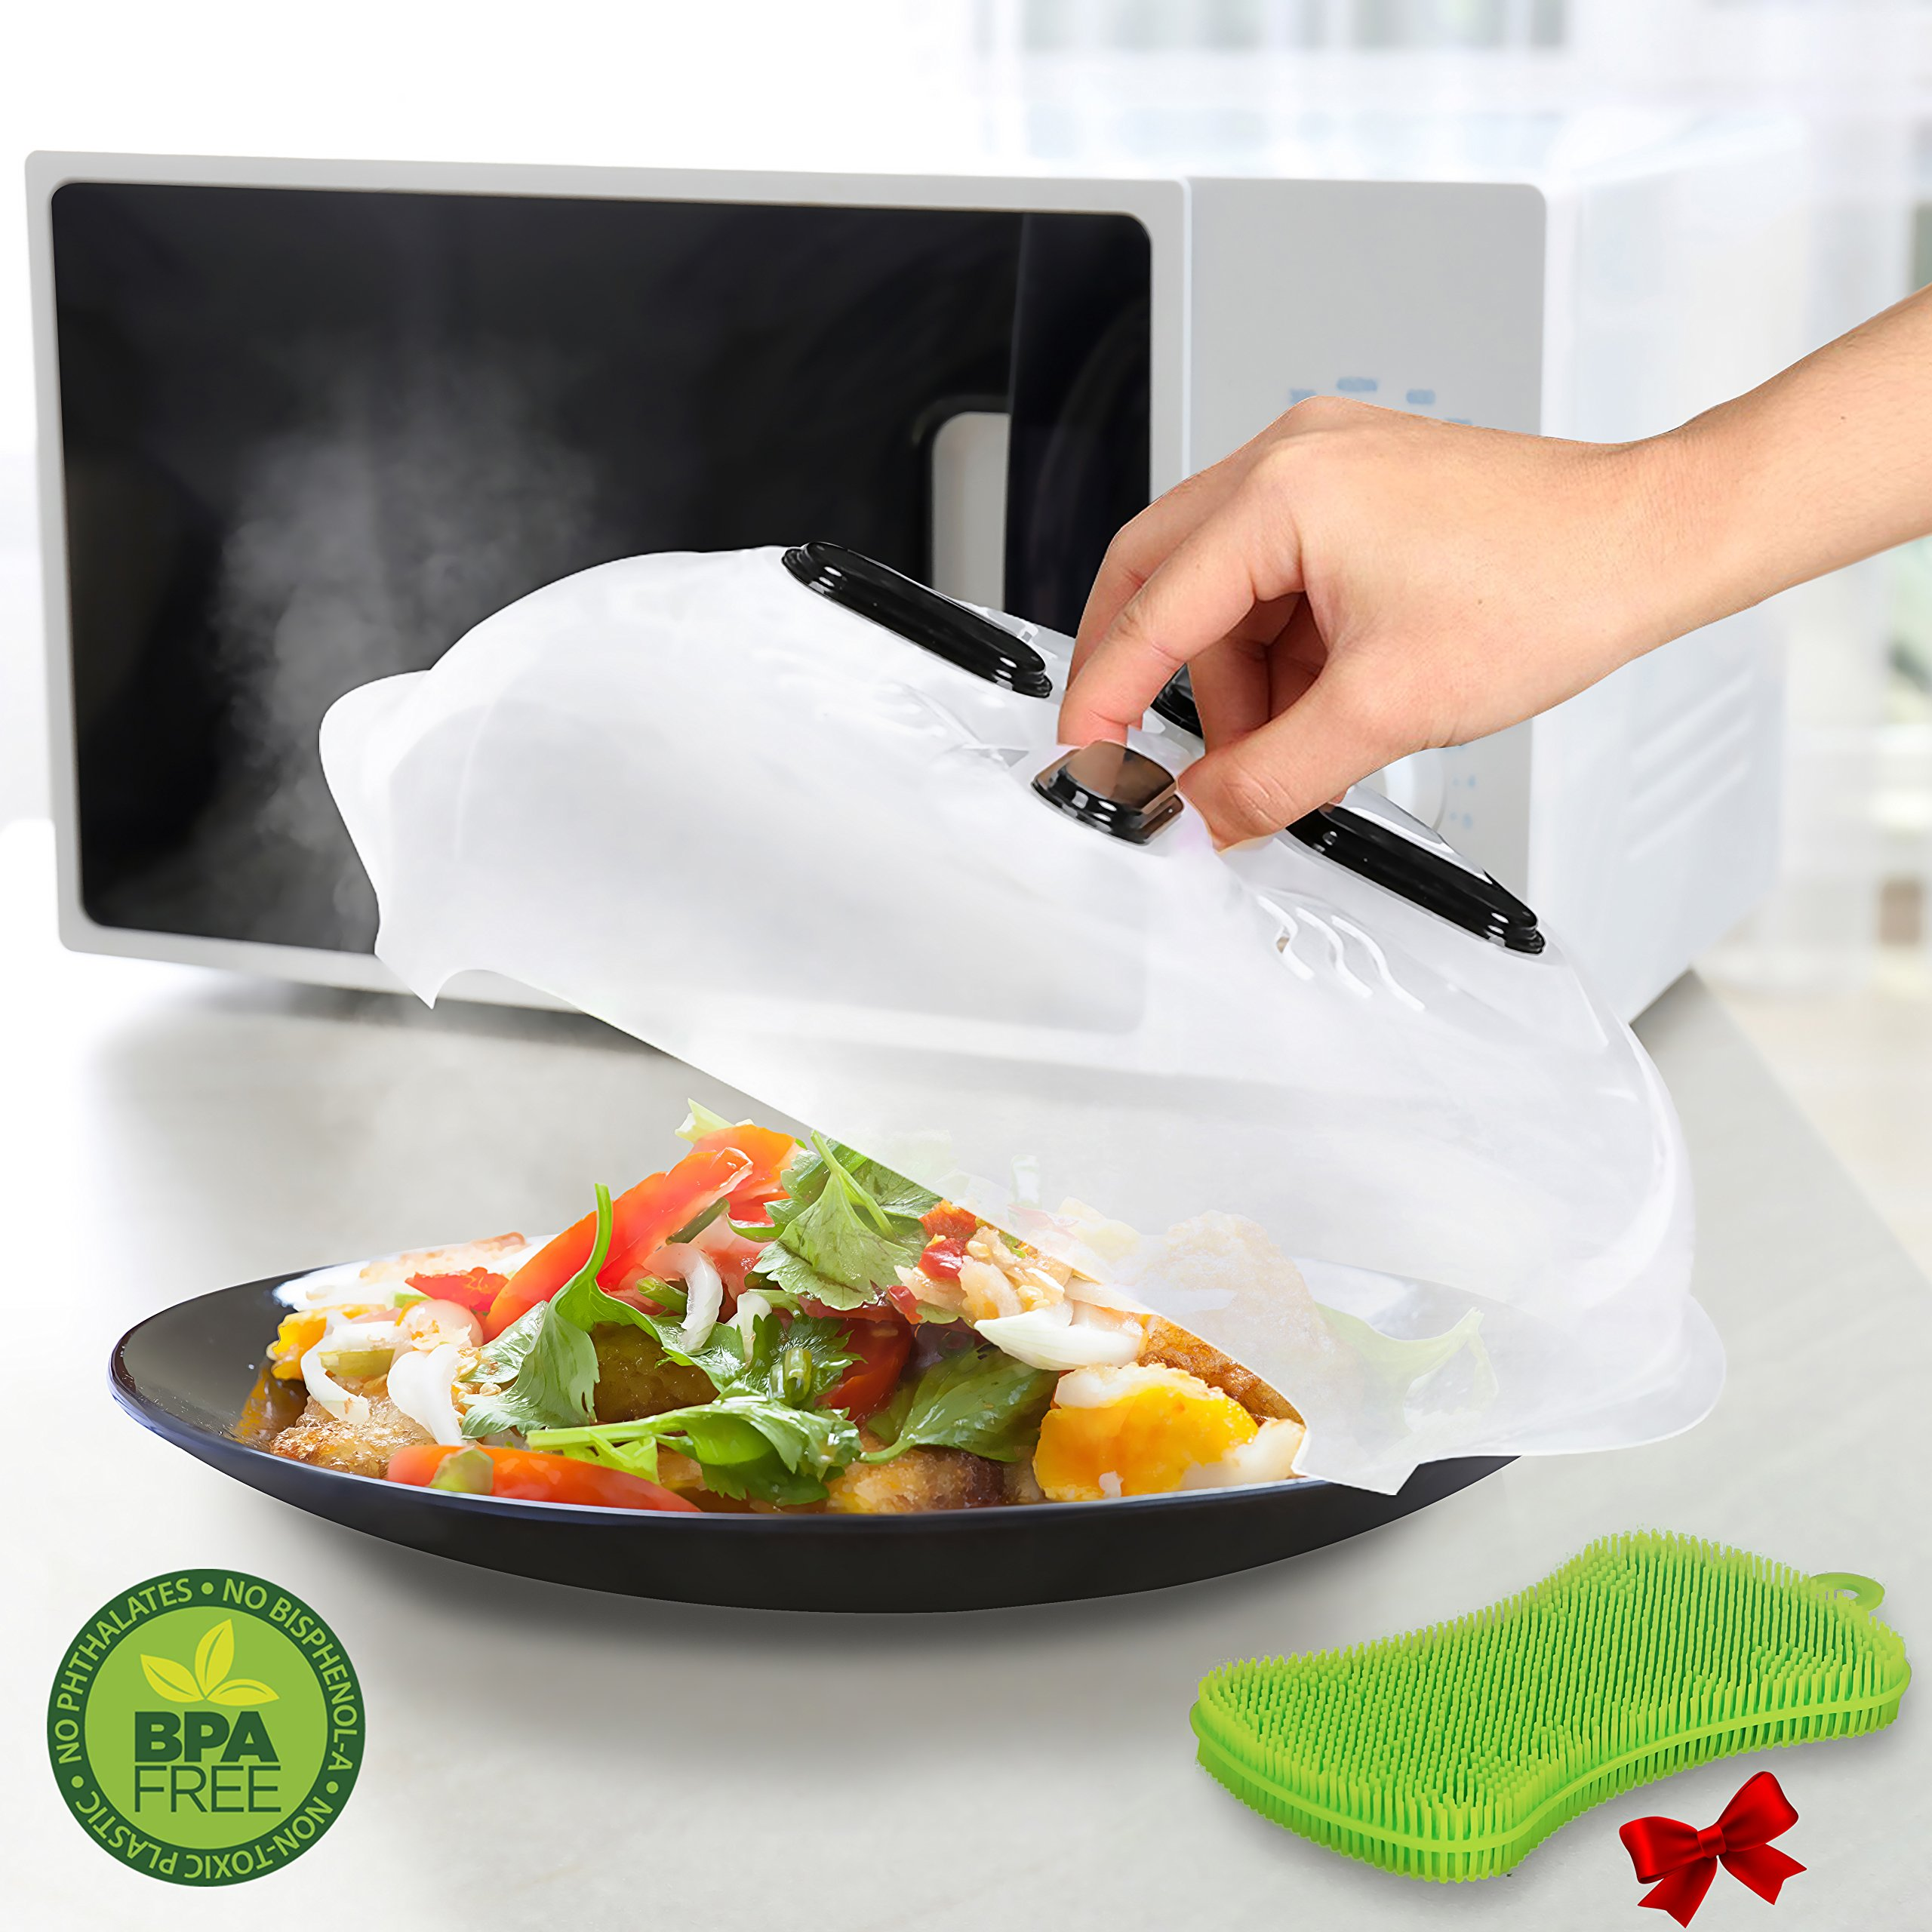 Microwave Plate Cover, Microwave Cover Magnetic Splatter Guard Lid, Microwave Food Cover with Steam Vents - 11.5 Inch & Antibacterial Silicone Sponge - Both BPA Free, by ELIFANA